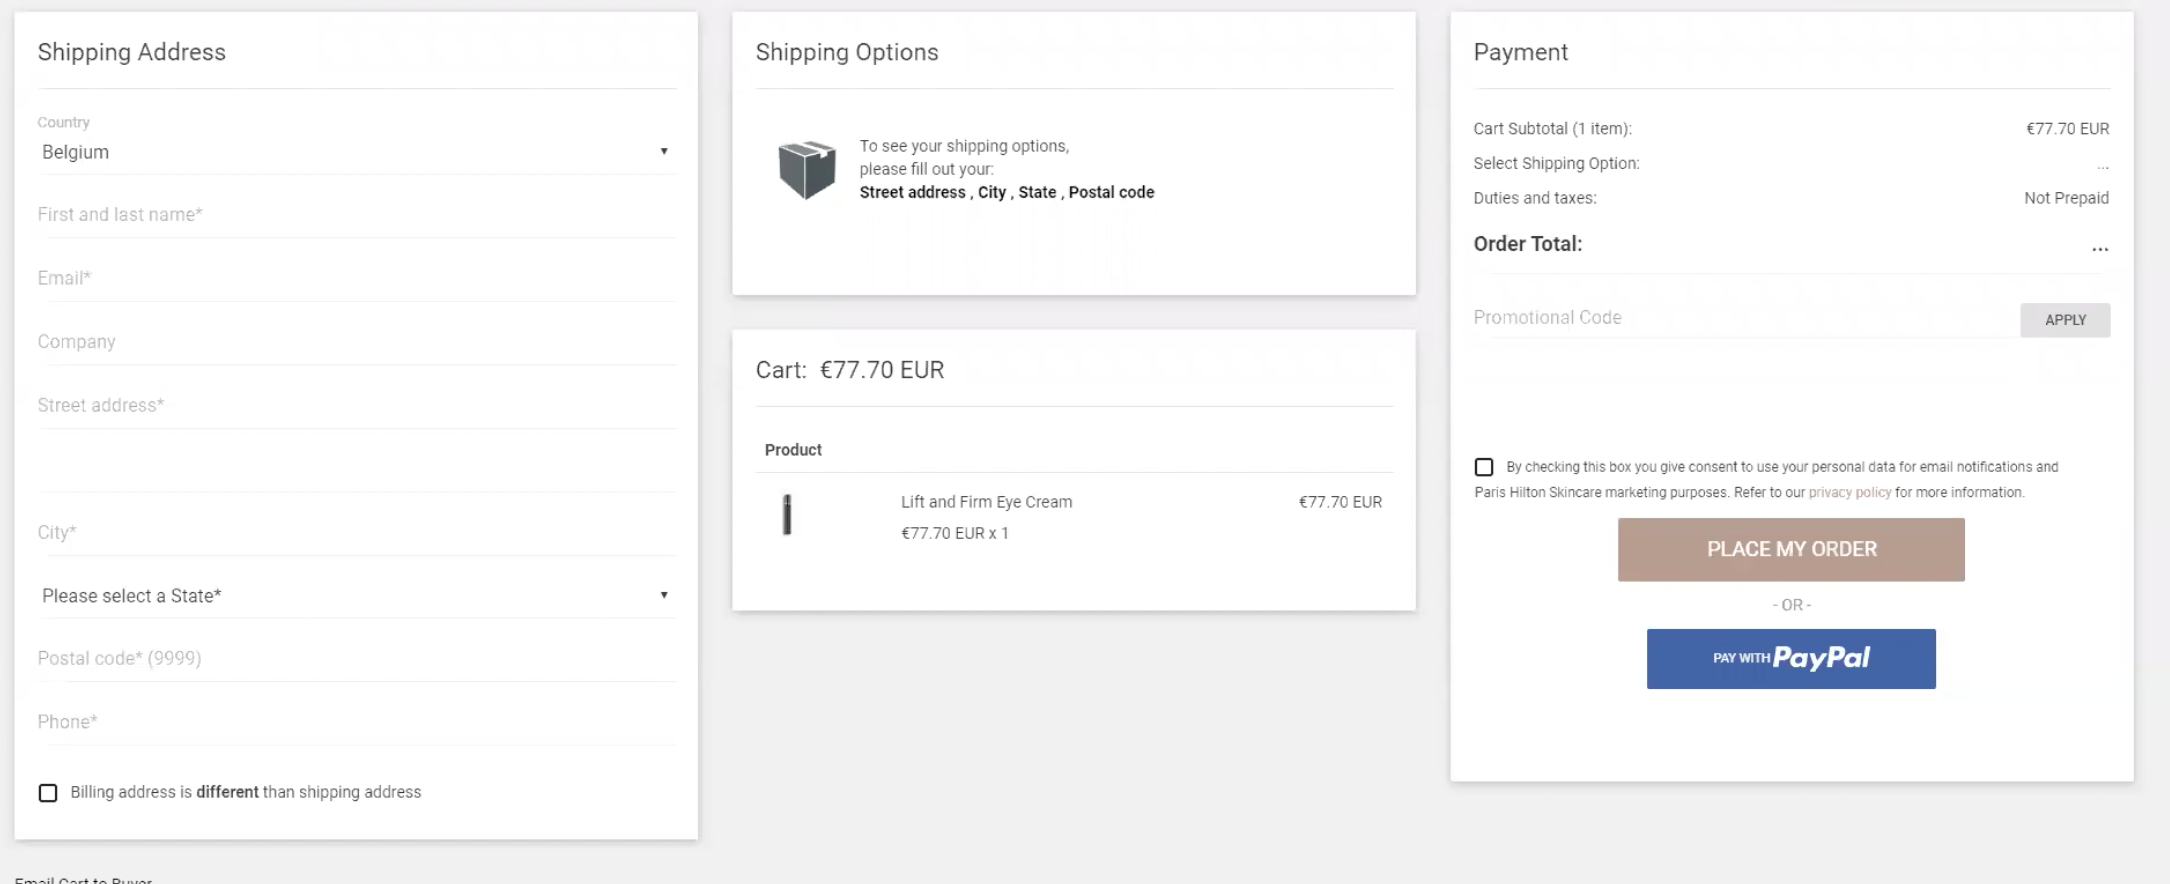 Zonos checkout process example showcasing how duties and taxes will be displayed and collected